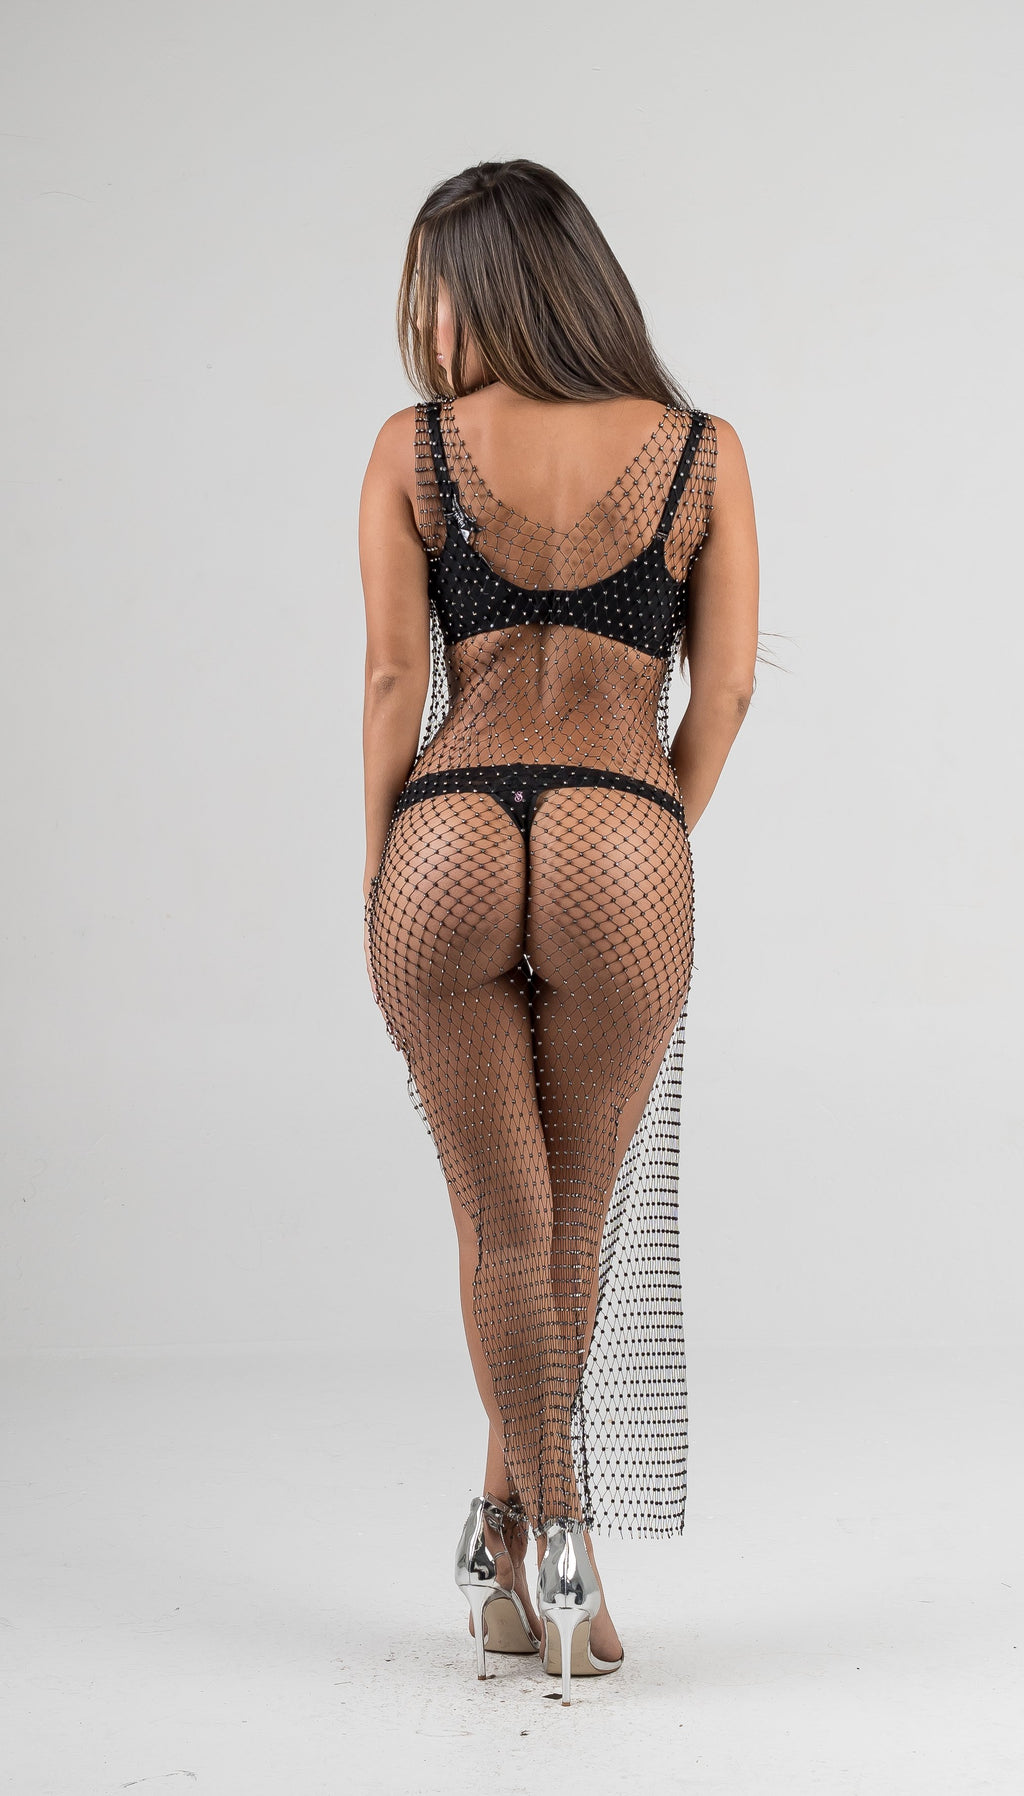 Black Fishnet Silver Rhinestone Cover Up Dress - GLISTENSTYLES